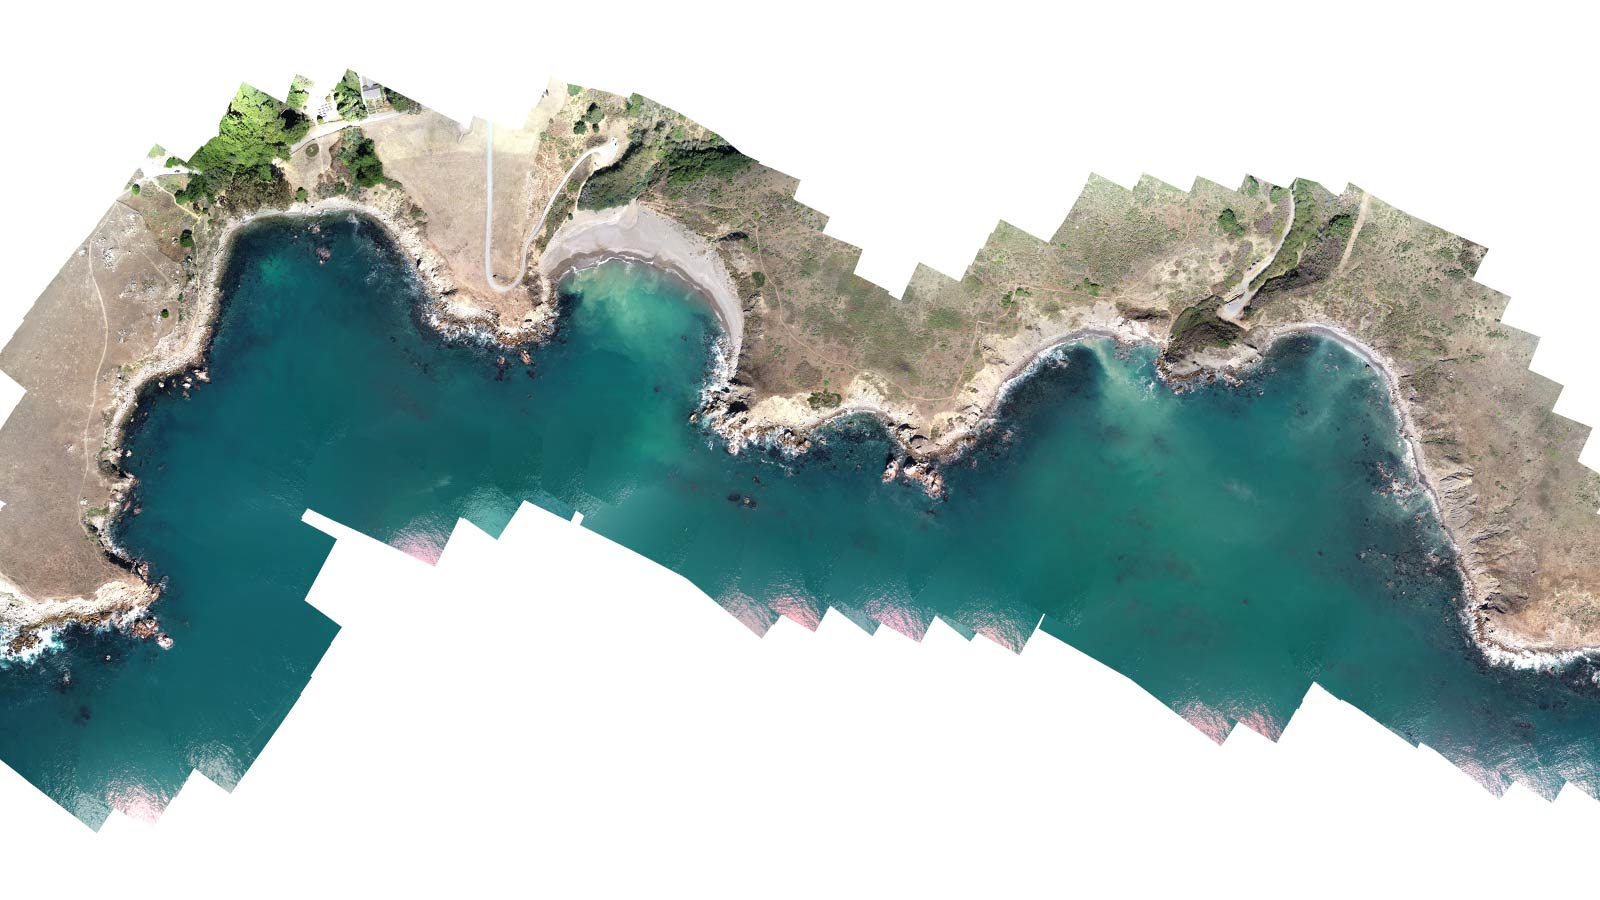 ocean-orthomoasic-with-drone-mapping